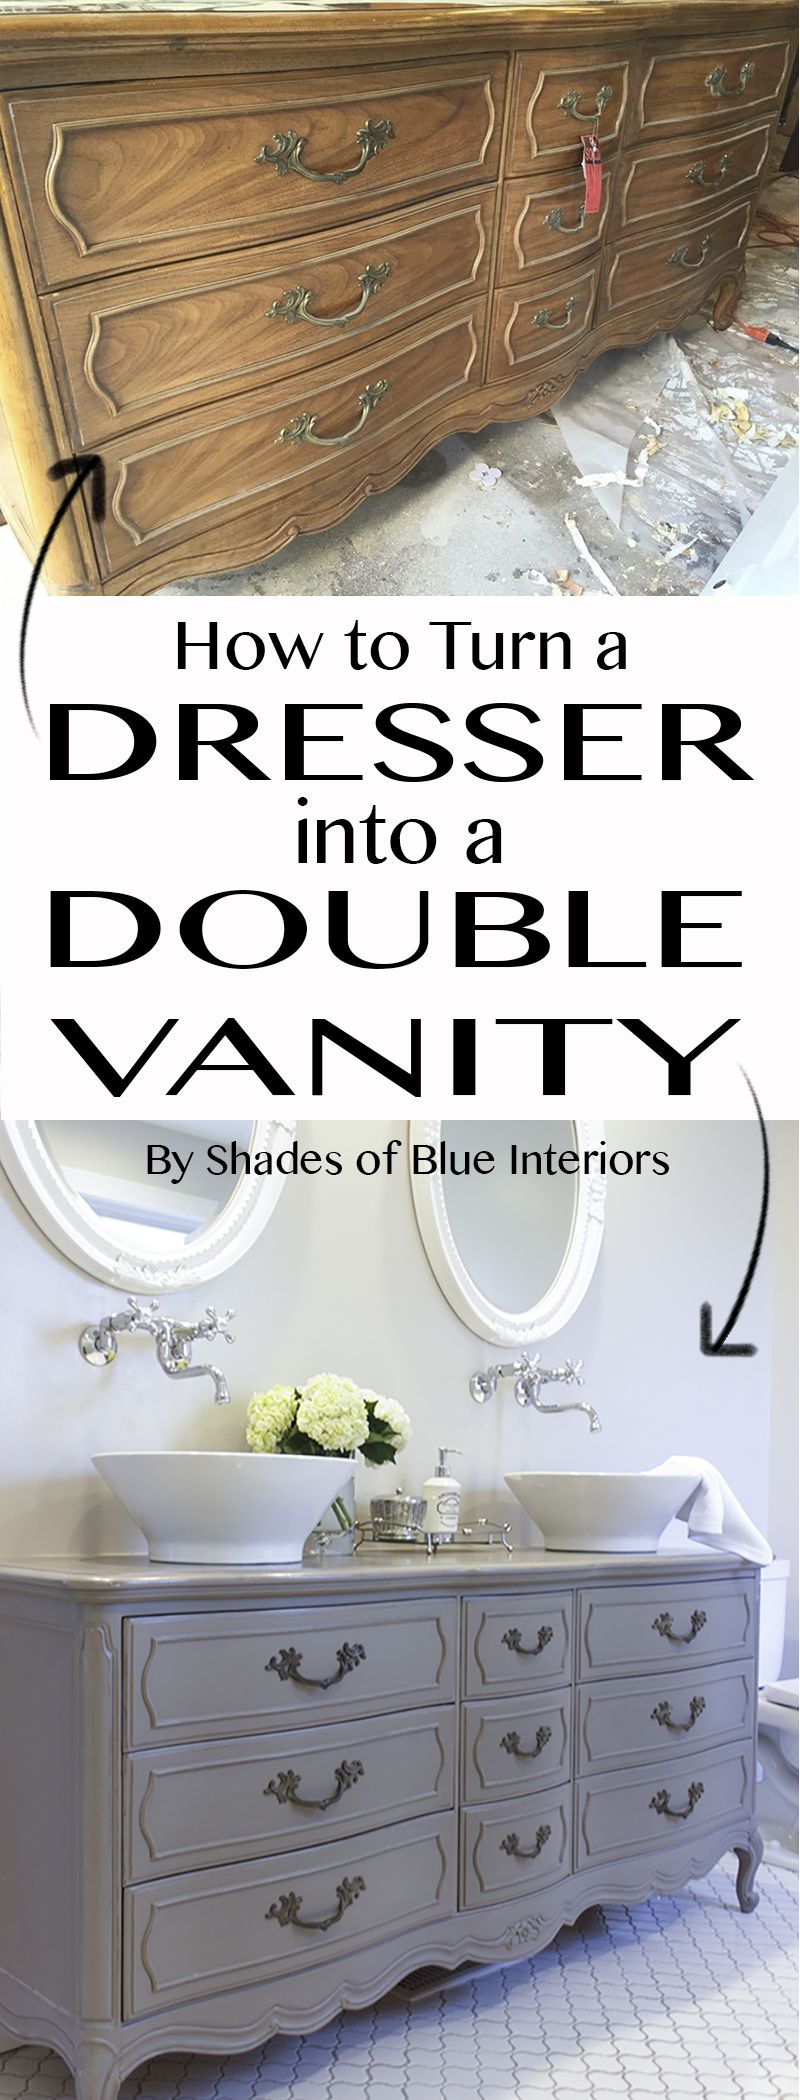 How To Turn A Garage Into A Bedroom: How To Turn A Dresser Into A Double Vanity